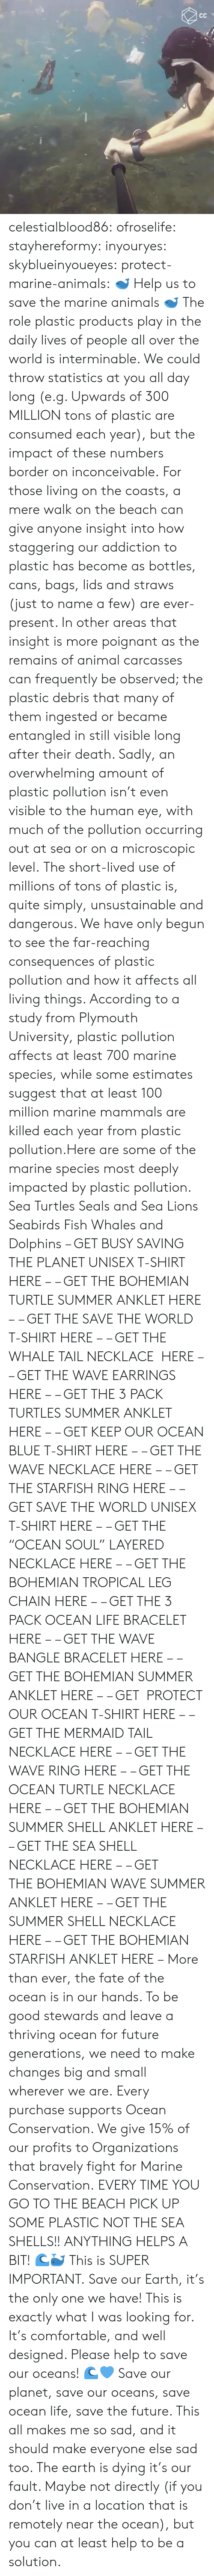 "Organizations: celestialblood86:  ofroselife: stayhereformy:  inyouryes:  skyblueinyoueyes:  protect-marine-animals:  🐋 Help us to save the marine animals 🐋 The role plastic products play in the daily lives of people all over the world is interminable. We could throw statistics at you all day long (e.g. Upwards of 300 MILLION tons of plastic are consumed each year), but the impact of these numbers border on inconceivable. For those living on the coasts, a mere walk on the beach can give anyone insight into how staggering our addiction to plastic has become as bottles, cans, bags, lids and straws (just to name a few) are ever-present. In other areas that insight is more poignant as the remains of animal carcasses can frequently be observed; the plastic debris that many of them ingested or became entangled in still visible long after their death. Sadly, an overwhelming amount of plastic pollution isn't even visible to the human eye, with much of the pollution occurring out at sea or on a microscopic level. The short-lived use of millions of tons of plastic is, quite simply, unsustainable and dangerous. We have only begun to see the far-reaching consequences of plastic pollution and how it affects all living things. According to a study from Plymouth University, plastic pollution affects at least 700 marine species, while some estimates suggest that at least 100 million marine mammals are killed each year from plastic pollution.Here are some of the marine species most deeply impacted by plastic pollution. Sea Turtles Seals and Sea Lions Seabirds Fish Whales and Dolphins – GET BUSY SAVING THE PLANET UNISEX T-SHIRT HERE – – GET THE BOHEMIAN TURTLE SUMMER ANKLET HERE – – GET THE SAVE THE WORLD T-SHIRT HERE – – GET THE WHALE TAIL NECKLACE  HERE – – GET THE WAVE EARRINGS HERE – – GET THE 3 PACK TURTLES SUMMER ANKLET HERE – – GET KEEP OUR OCEAN BLUE T-SHIRT HERE – – GET THE WAVE NECKLACE HERE – – GET THE STARFISH RING HERE – – GET SAVE THE WORLD UNISEX T-SHIRT HERE – – GET THE ""OCEAN SOUL"" LAYERED NECKLACE HERE – – GET THE BOHEMIAN TROPICAL LEG CHAIN HERE – – GET THE 3 PACK OCEAN LIFE BRACELET HERE – – GET THE WAVE BANGLE BRACELET HERE – – GET THE BOHEMIAN SUMMER ANKLET HERE – – GET  PROTECT OUR OCEAN T-SHIRT HERE – – GET THE MERMAID TAIL NECKLACE HERE – – GET THE WAVE RING HERE – – GET THE OCEAN TURTLE NECKLACE HERE – – GET THE BOHEMIAN SUMMER SHELL ANKLET HERE – – GET THE SEA SHELL NECKLACE HERE – – GET THE BOHEMIAN WAVE SUMMER ANKLET HERE – – GET THE SUMMER SHELL NECKLACE HERE – – GET THE BOHEMIAN STARFISH ANKLET HERE – More than ever, the fate of the ocean is in our hands. To be good stewards and leave a thriving ocean for future generations, we need to make changes big and small wherever we are. Every purchase supports Ocean Conservation. We give 15% of our profits to Organizations that bravely fight for Marine Conservation.  EVERY TIME YOU GO TO THE BEACH PICK UP SOME PLASTIC NOT THE SEA SHELLS!! ANYTHING HELPS A BIT! 🌊🐳  This is SUPER IMPORTANT.  Save our Earth, it's the only one we have!  This is exactly what I was looking for. It's comfortable, and well designed. Please help to save our oceans! 🌊💙  Save our planet, save our oceans, save ocean life, save the future. This all makes me so sad, and it should make everyone else sad too. The earth is dying it's our fault. Maybe not directly (if you don't live in a location that is remotely near the ocean), but you can at least help to be a solution."